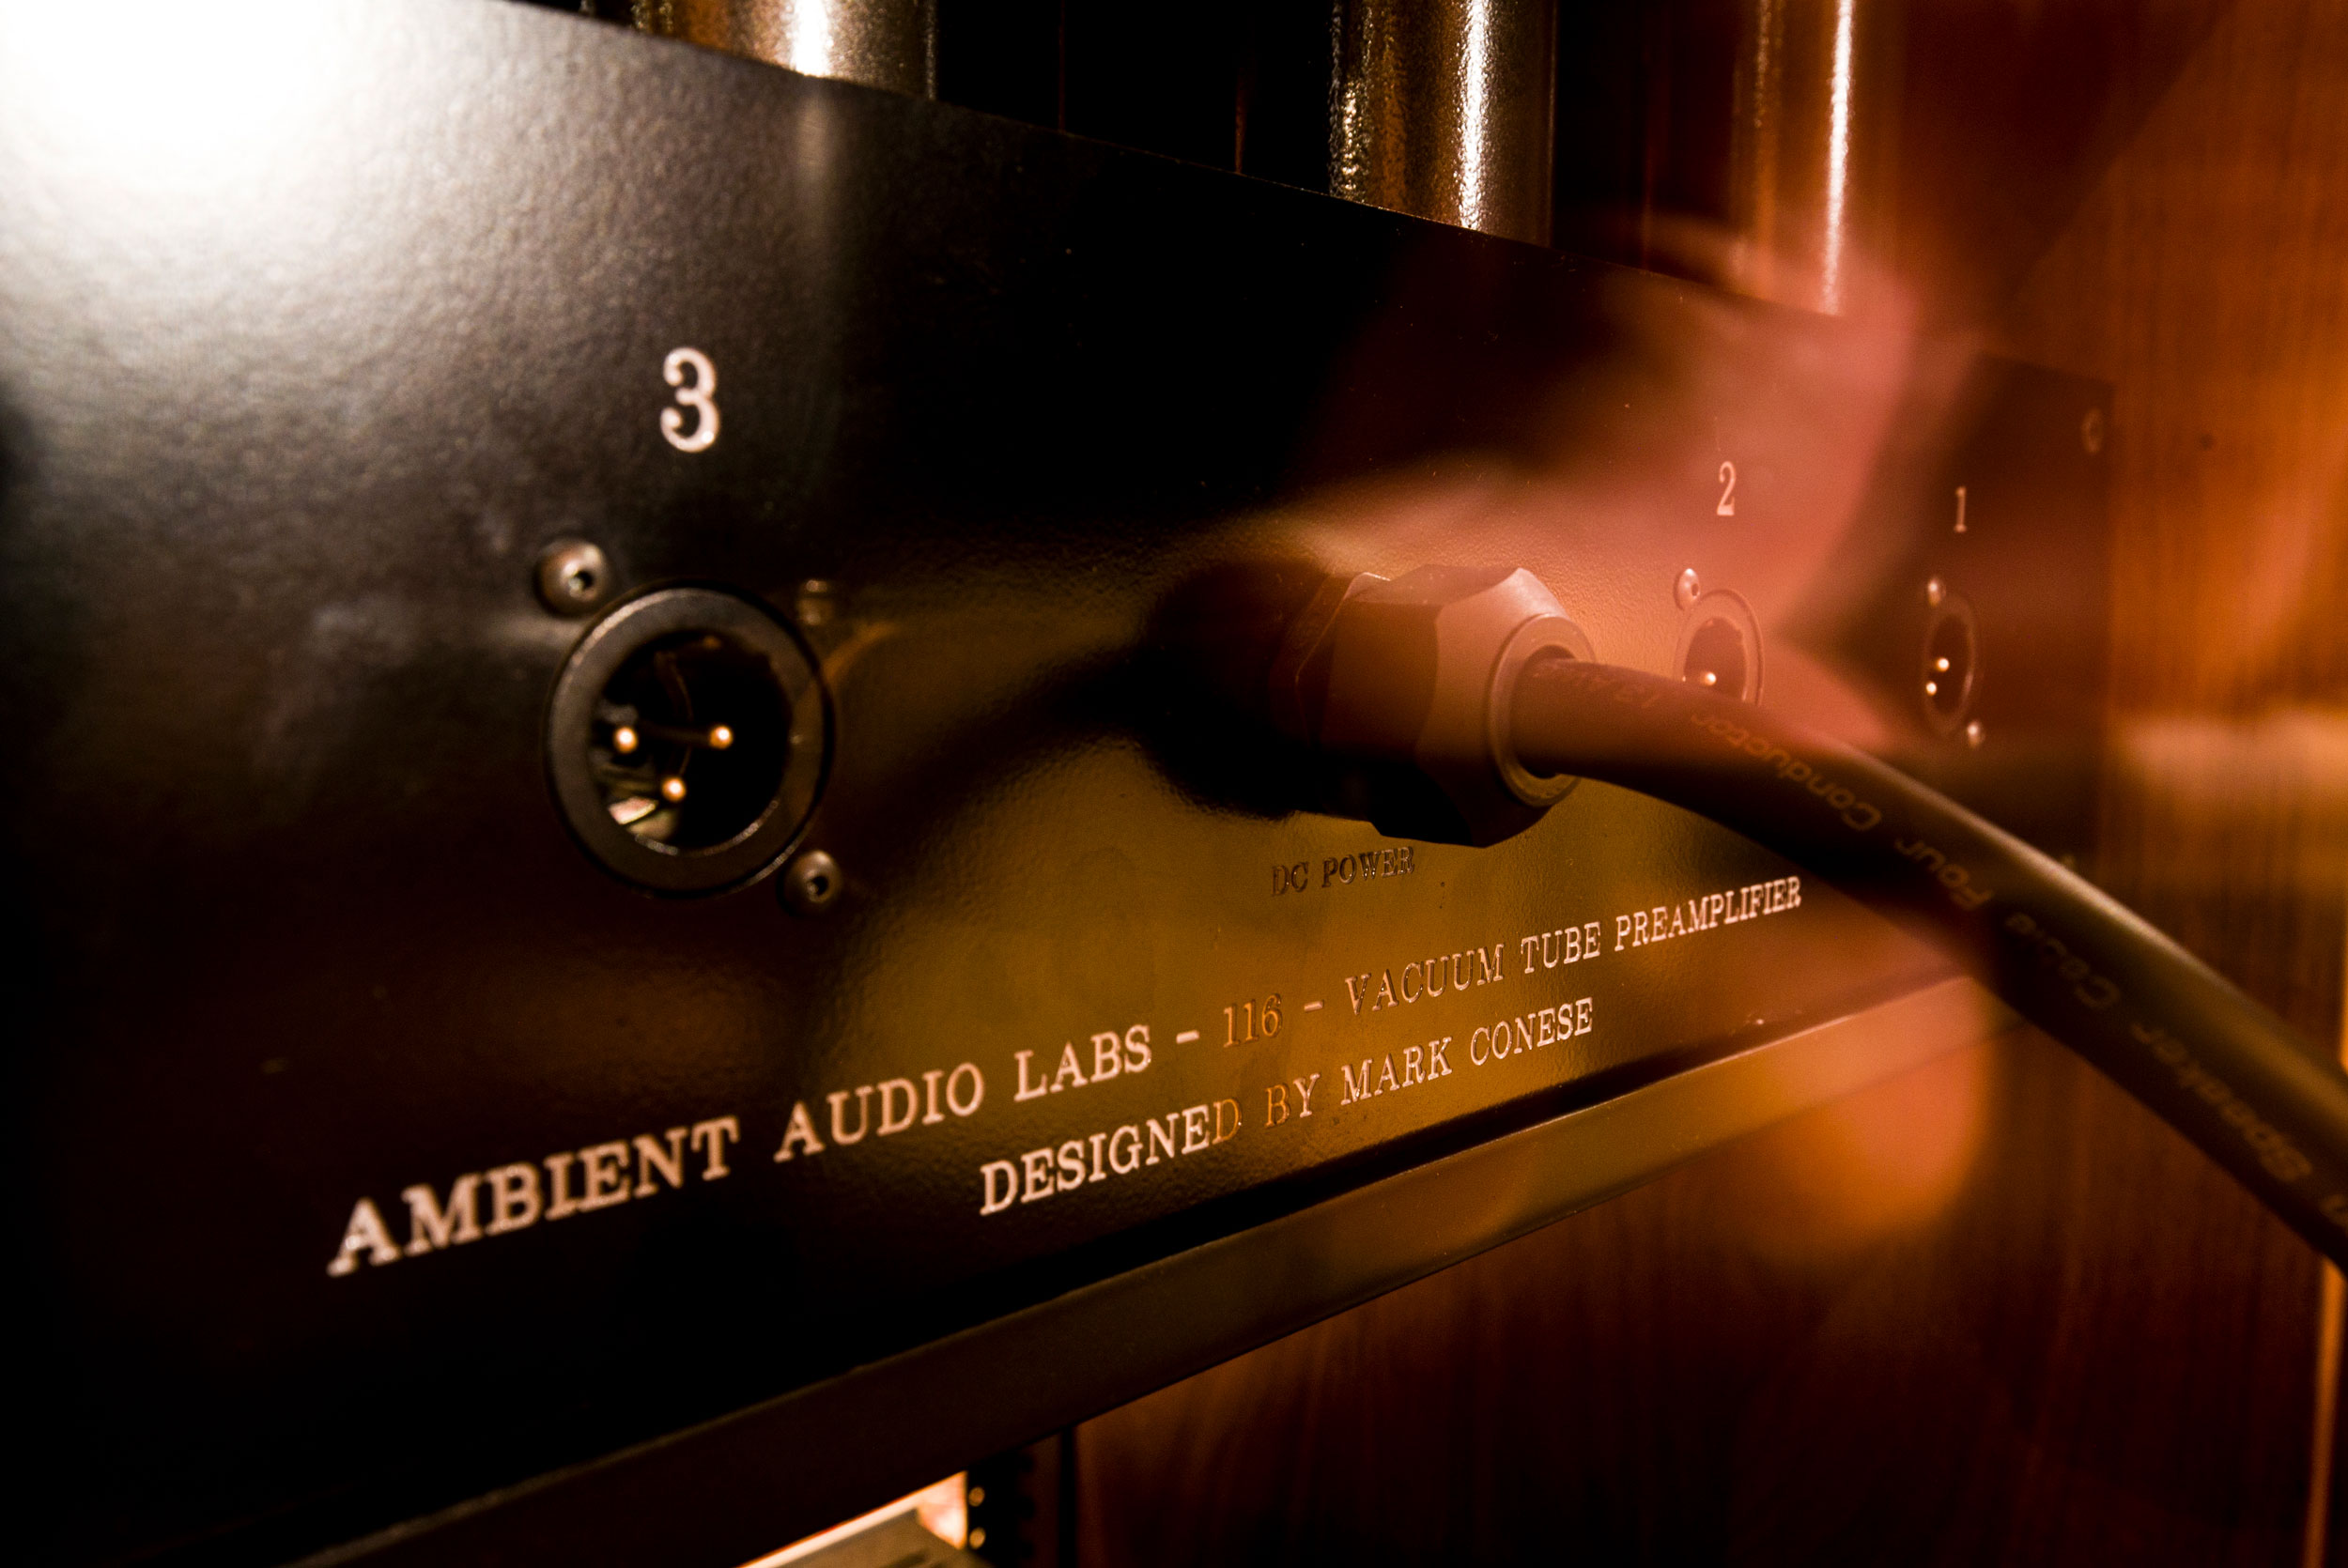 Custom pro audio hardware - Mark Conese designs and builds custom recording spaces, new vacuum tube microphones, transistorized as well as vacuum tube microphone preamplifiers, DI pre-amplifiers, discreet mixing consoles, power amplifiers and speaker monitor systems.For 2018, plans have been made to build a custom 32 input class-A discrete transistorized mixing console designed to bridge the gap between Hi-Fidelity playback equipment and professional recording equipment. A completely unique and custom recording chain from microphone to monitor creates a sound quality that is only available at Ambient Records.